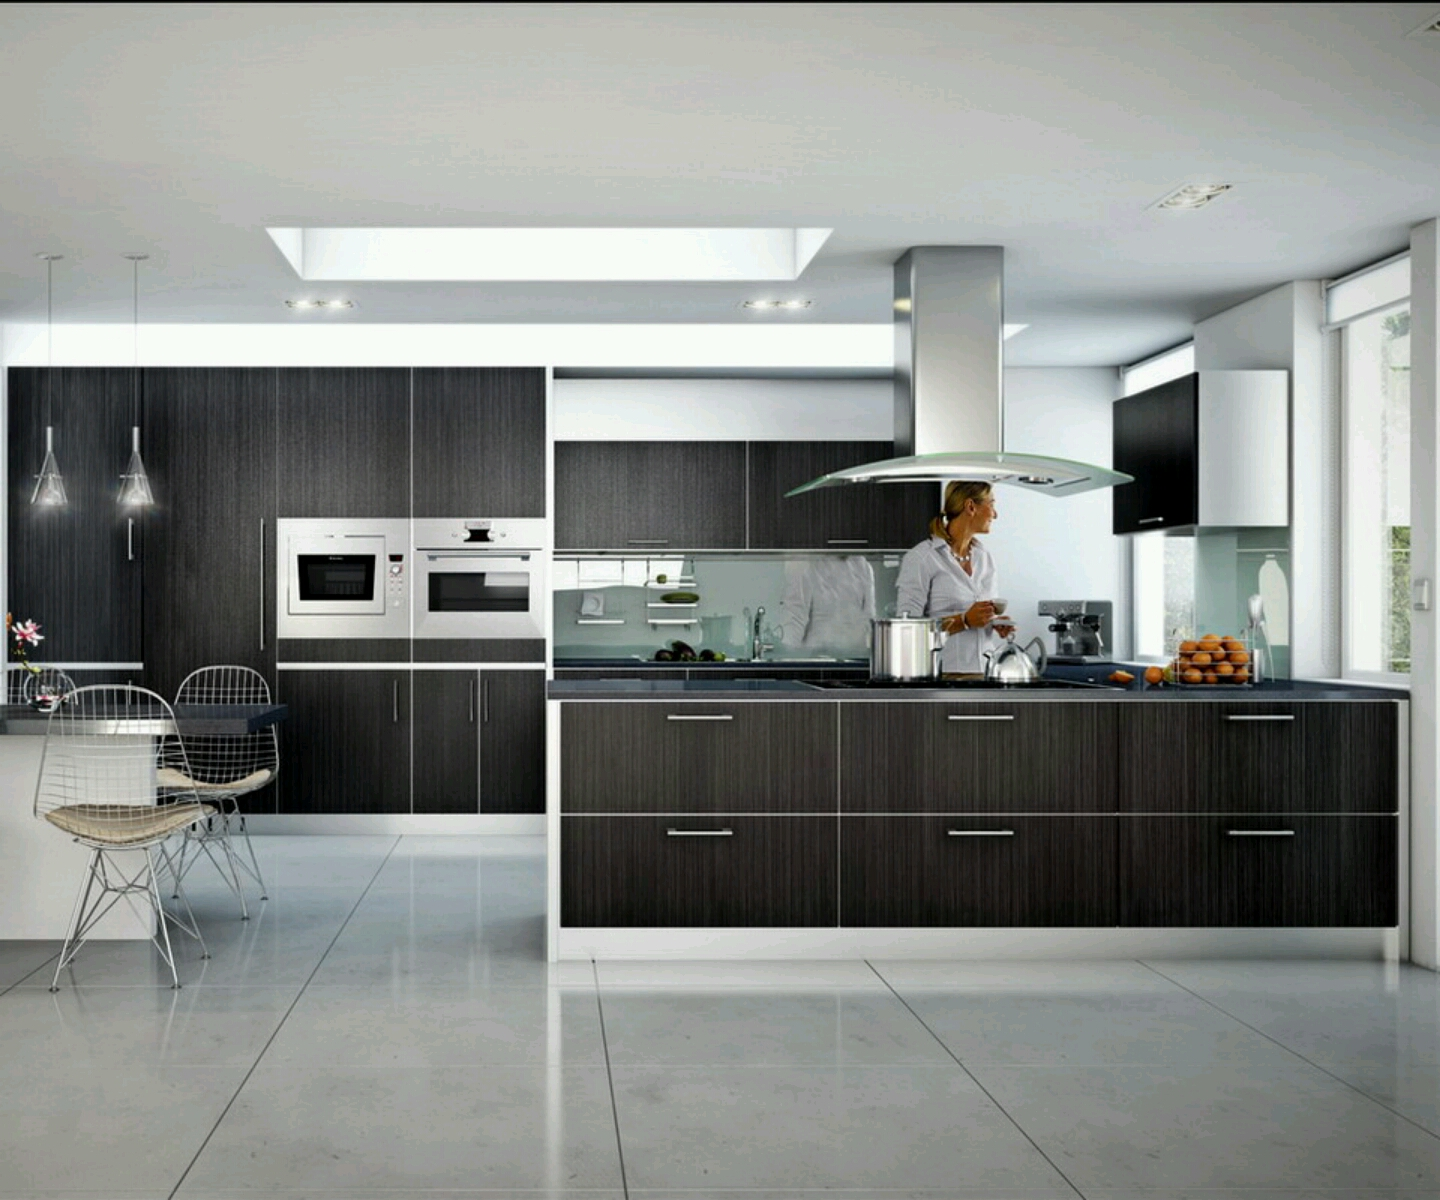 design kitchen modern modern kitchen designs photo gallery decorating ideas 503